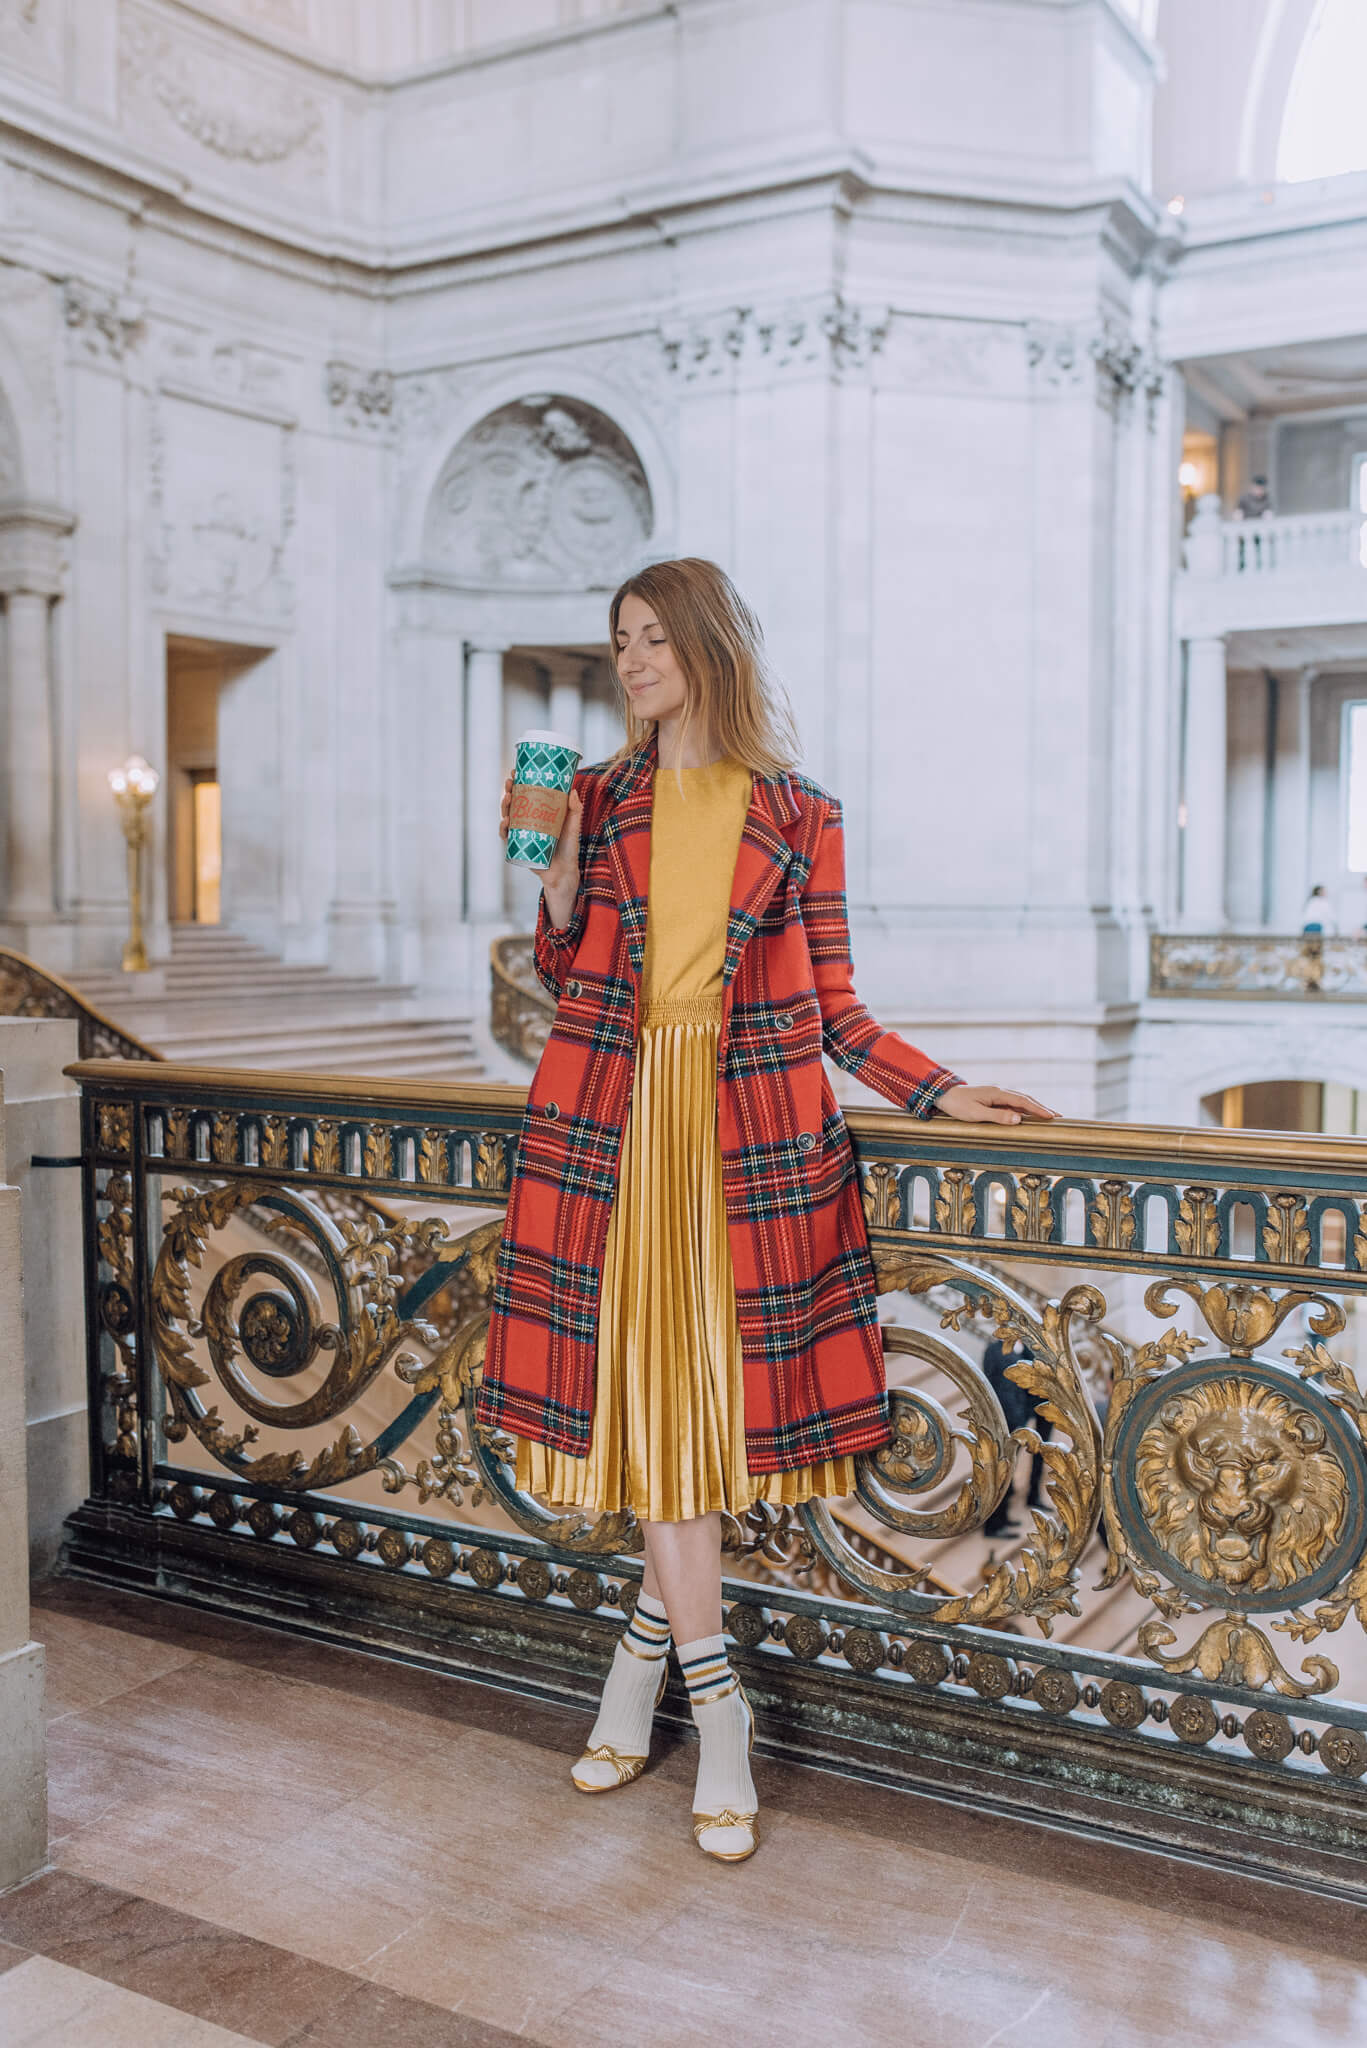 Plaid-and-gold-outfit.jpg